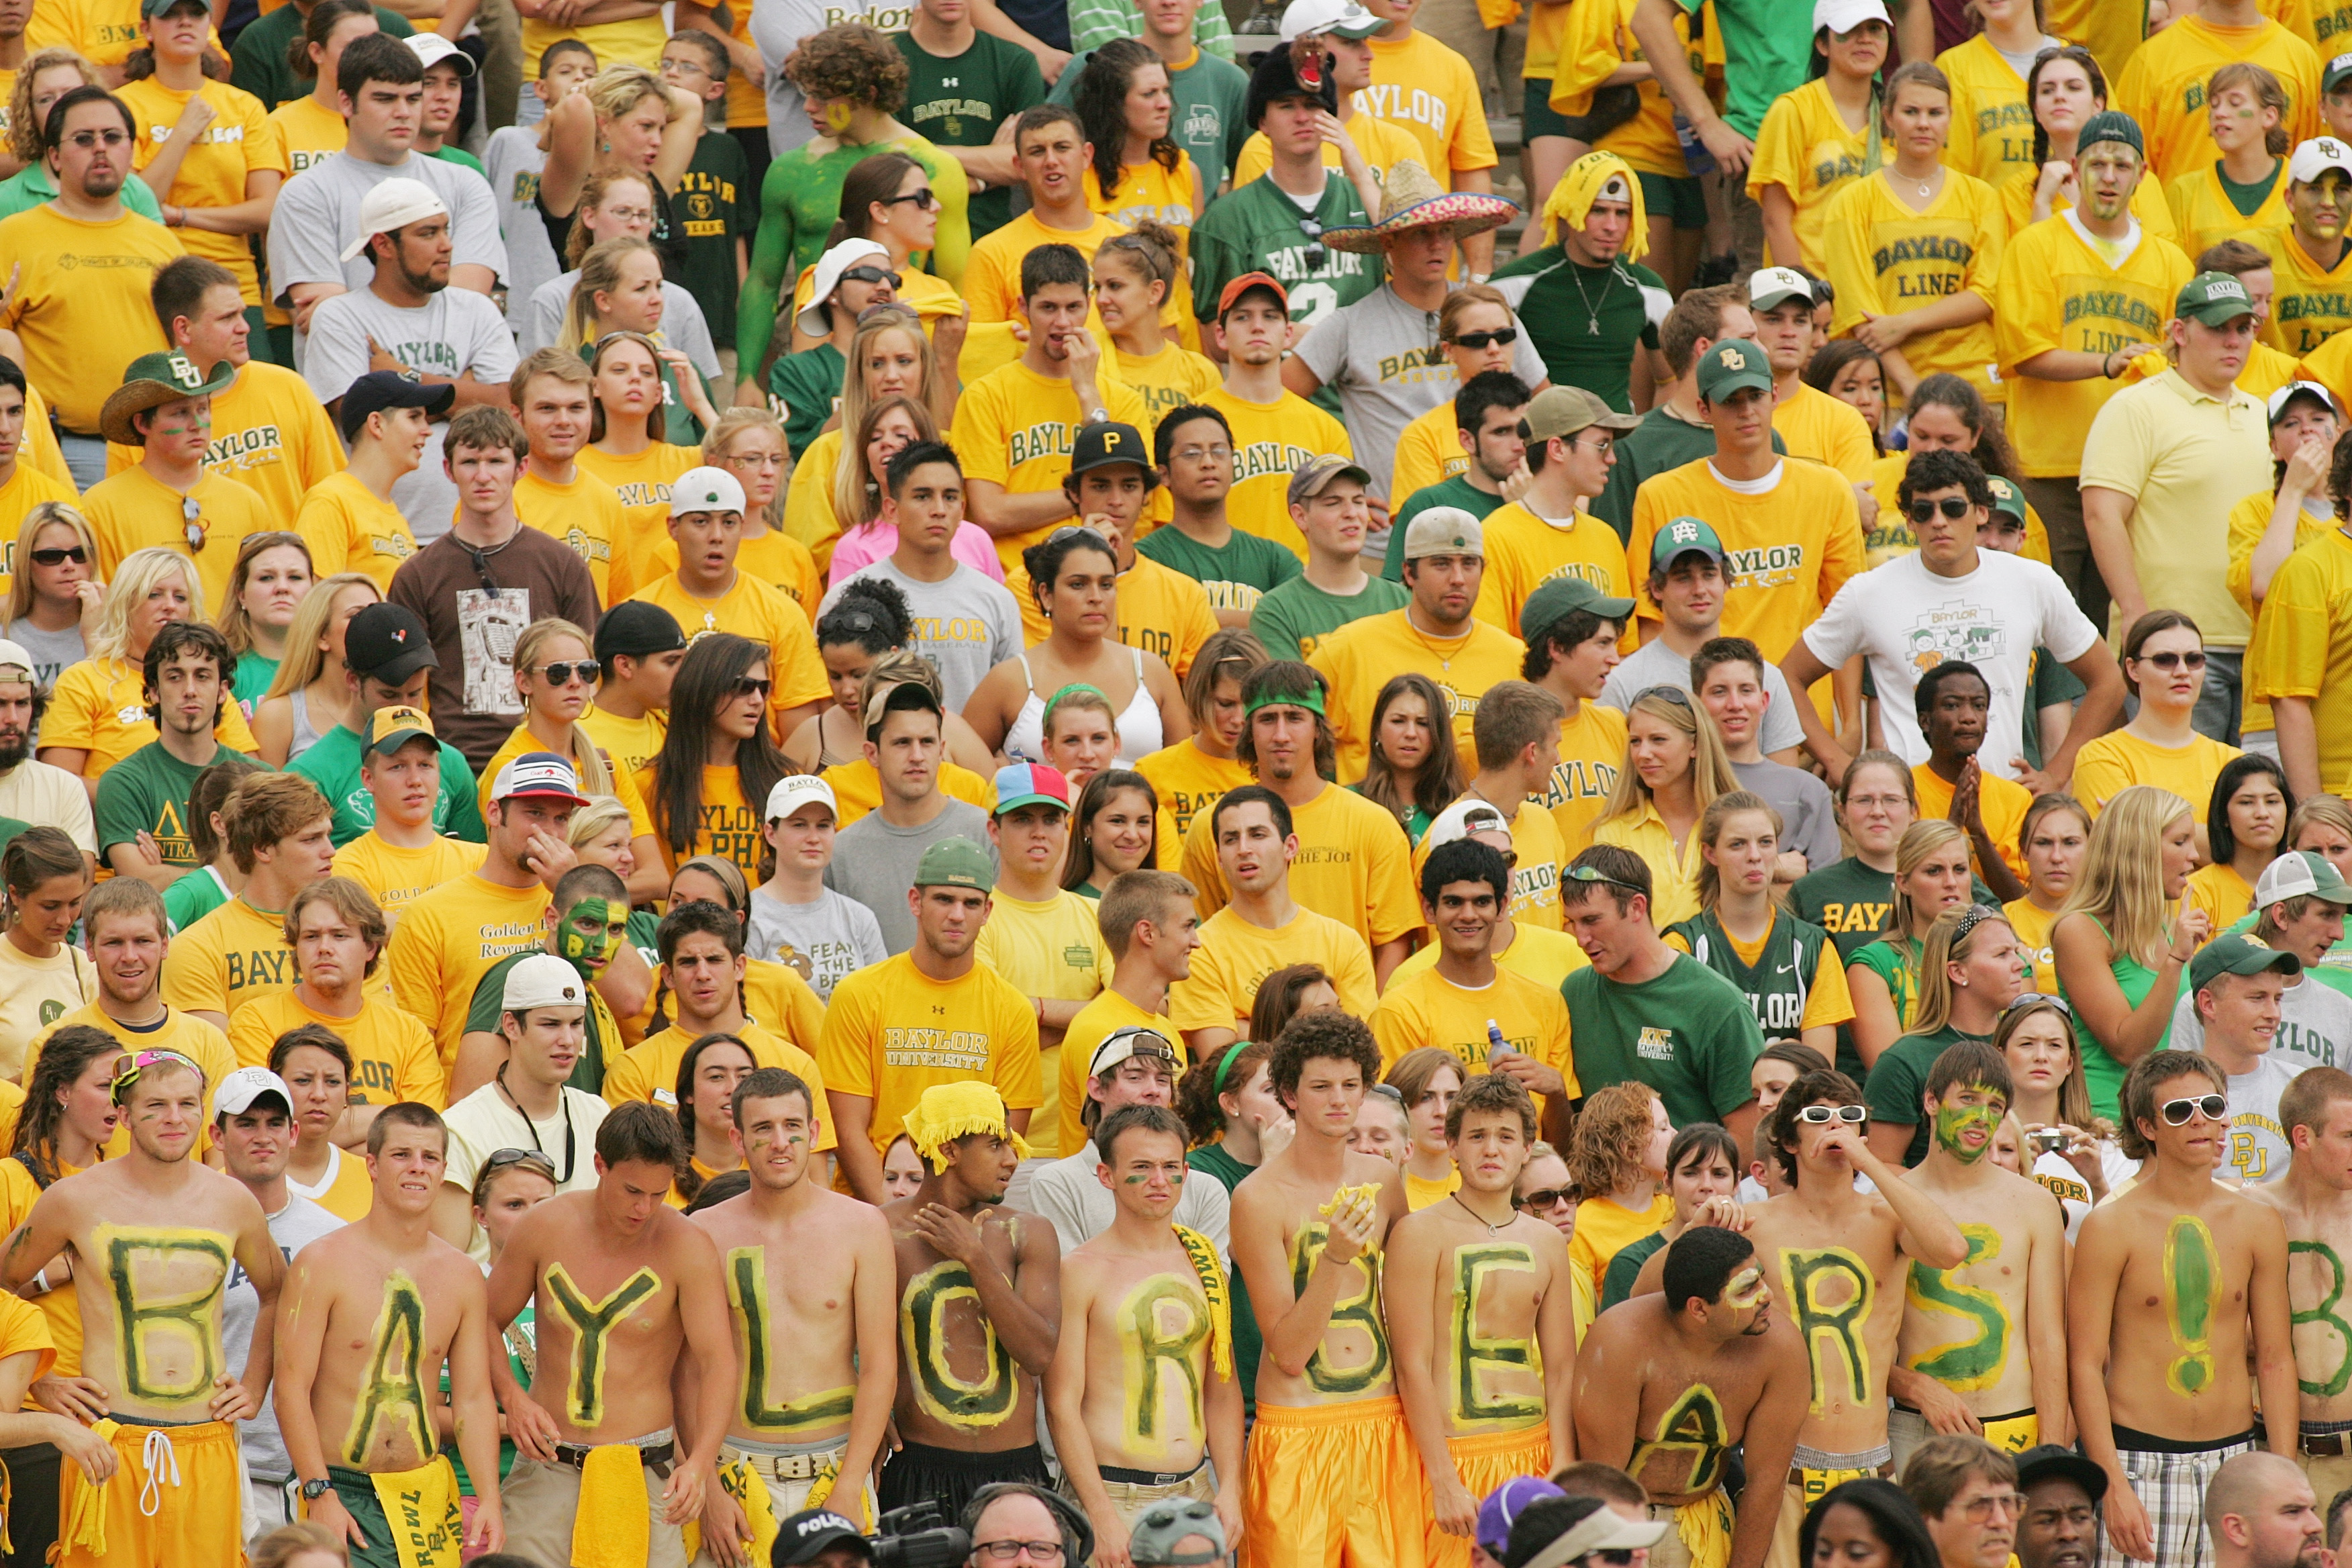 WACO, TX - SEPTEMBER 3:  Baylor Bears fans watch the game against the TCU Horned Frogs on September 3, 2006 at Floyd Casey Stadium in Waco, Texas. TCU defeated Baylor 17-7.  (Photo by Ronald Martinez/Getty Images)